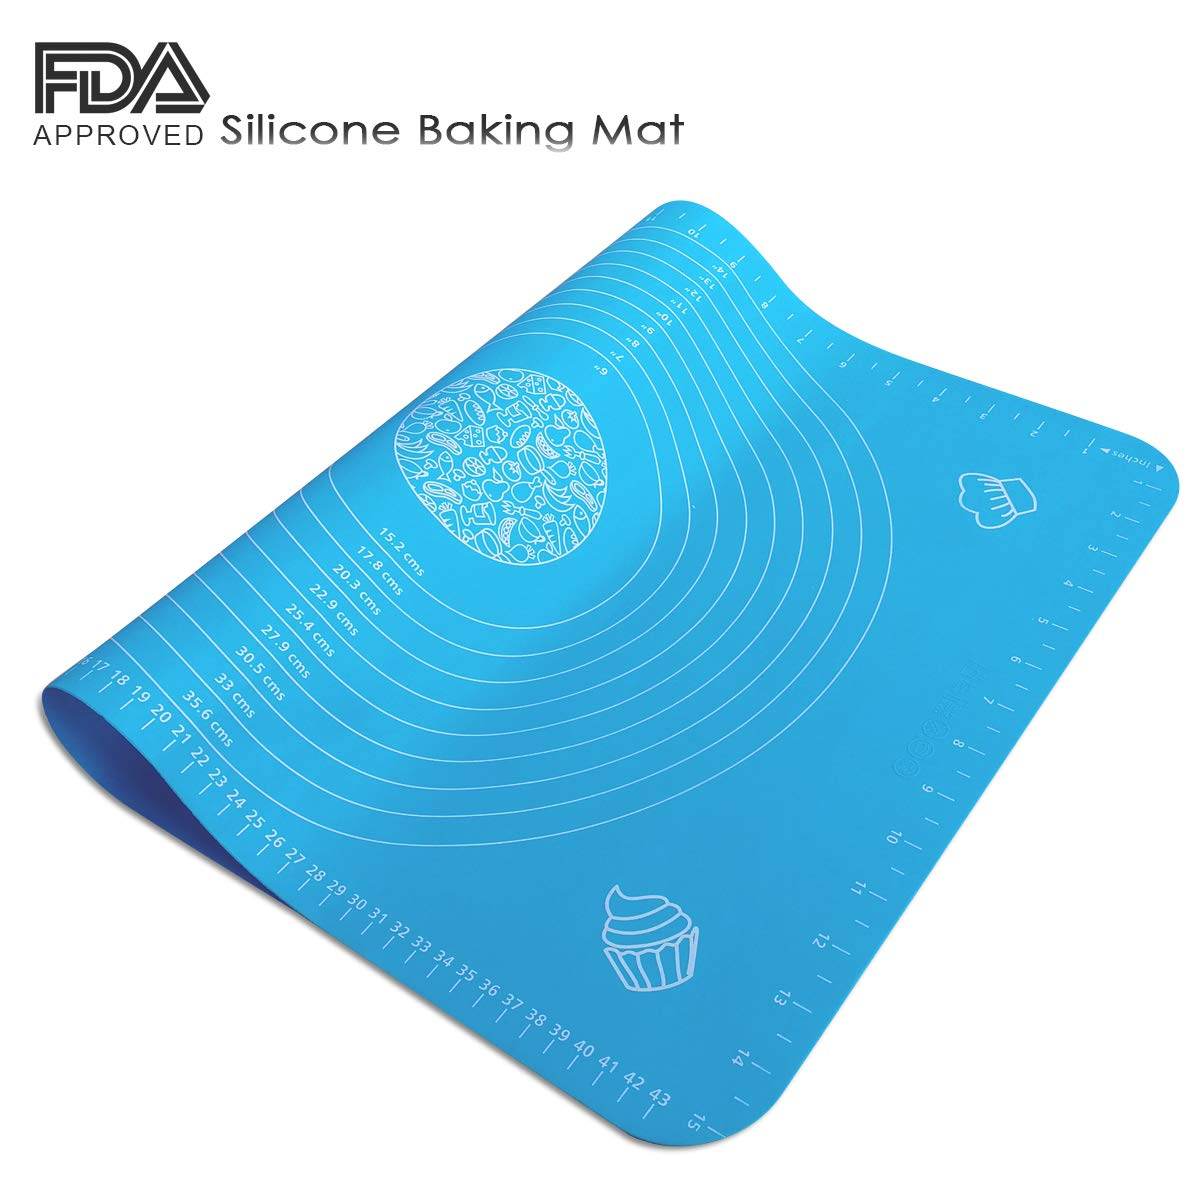 Silicone Pastry Mat with Measurements for Rolling Dough Non Stick Silicone Baking Mats Reusable Macaroon Baking mat LK10-BL